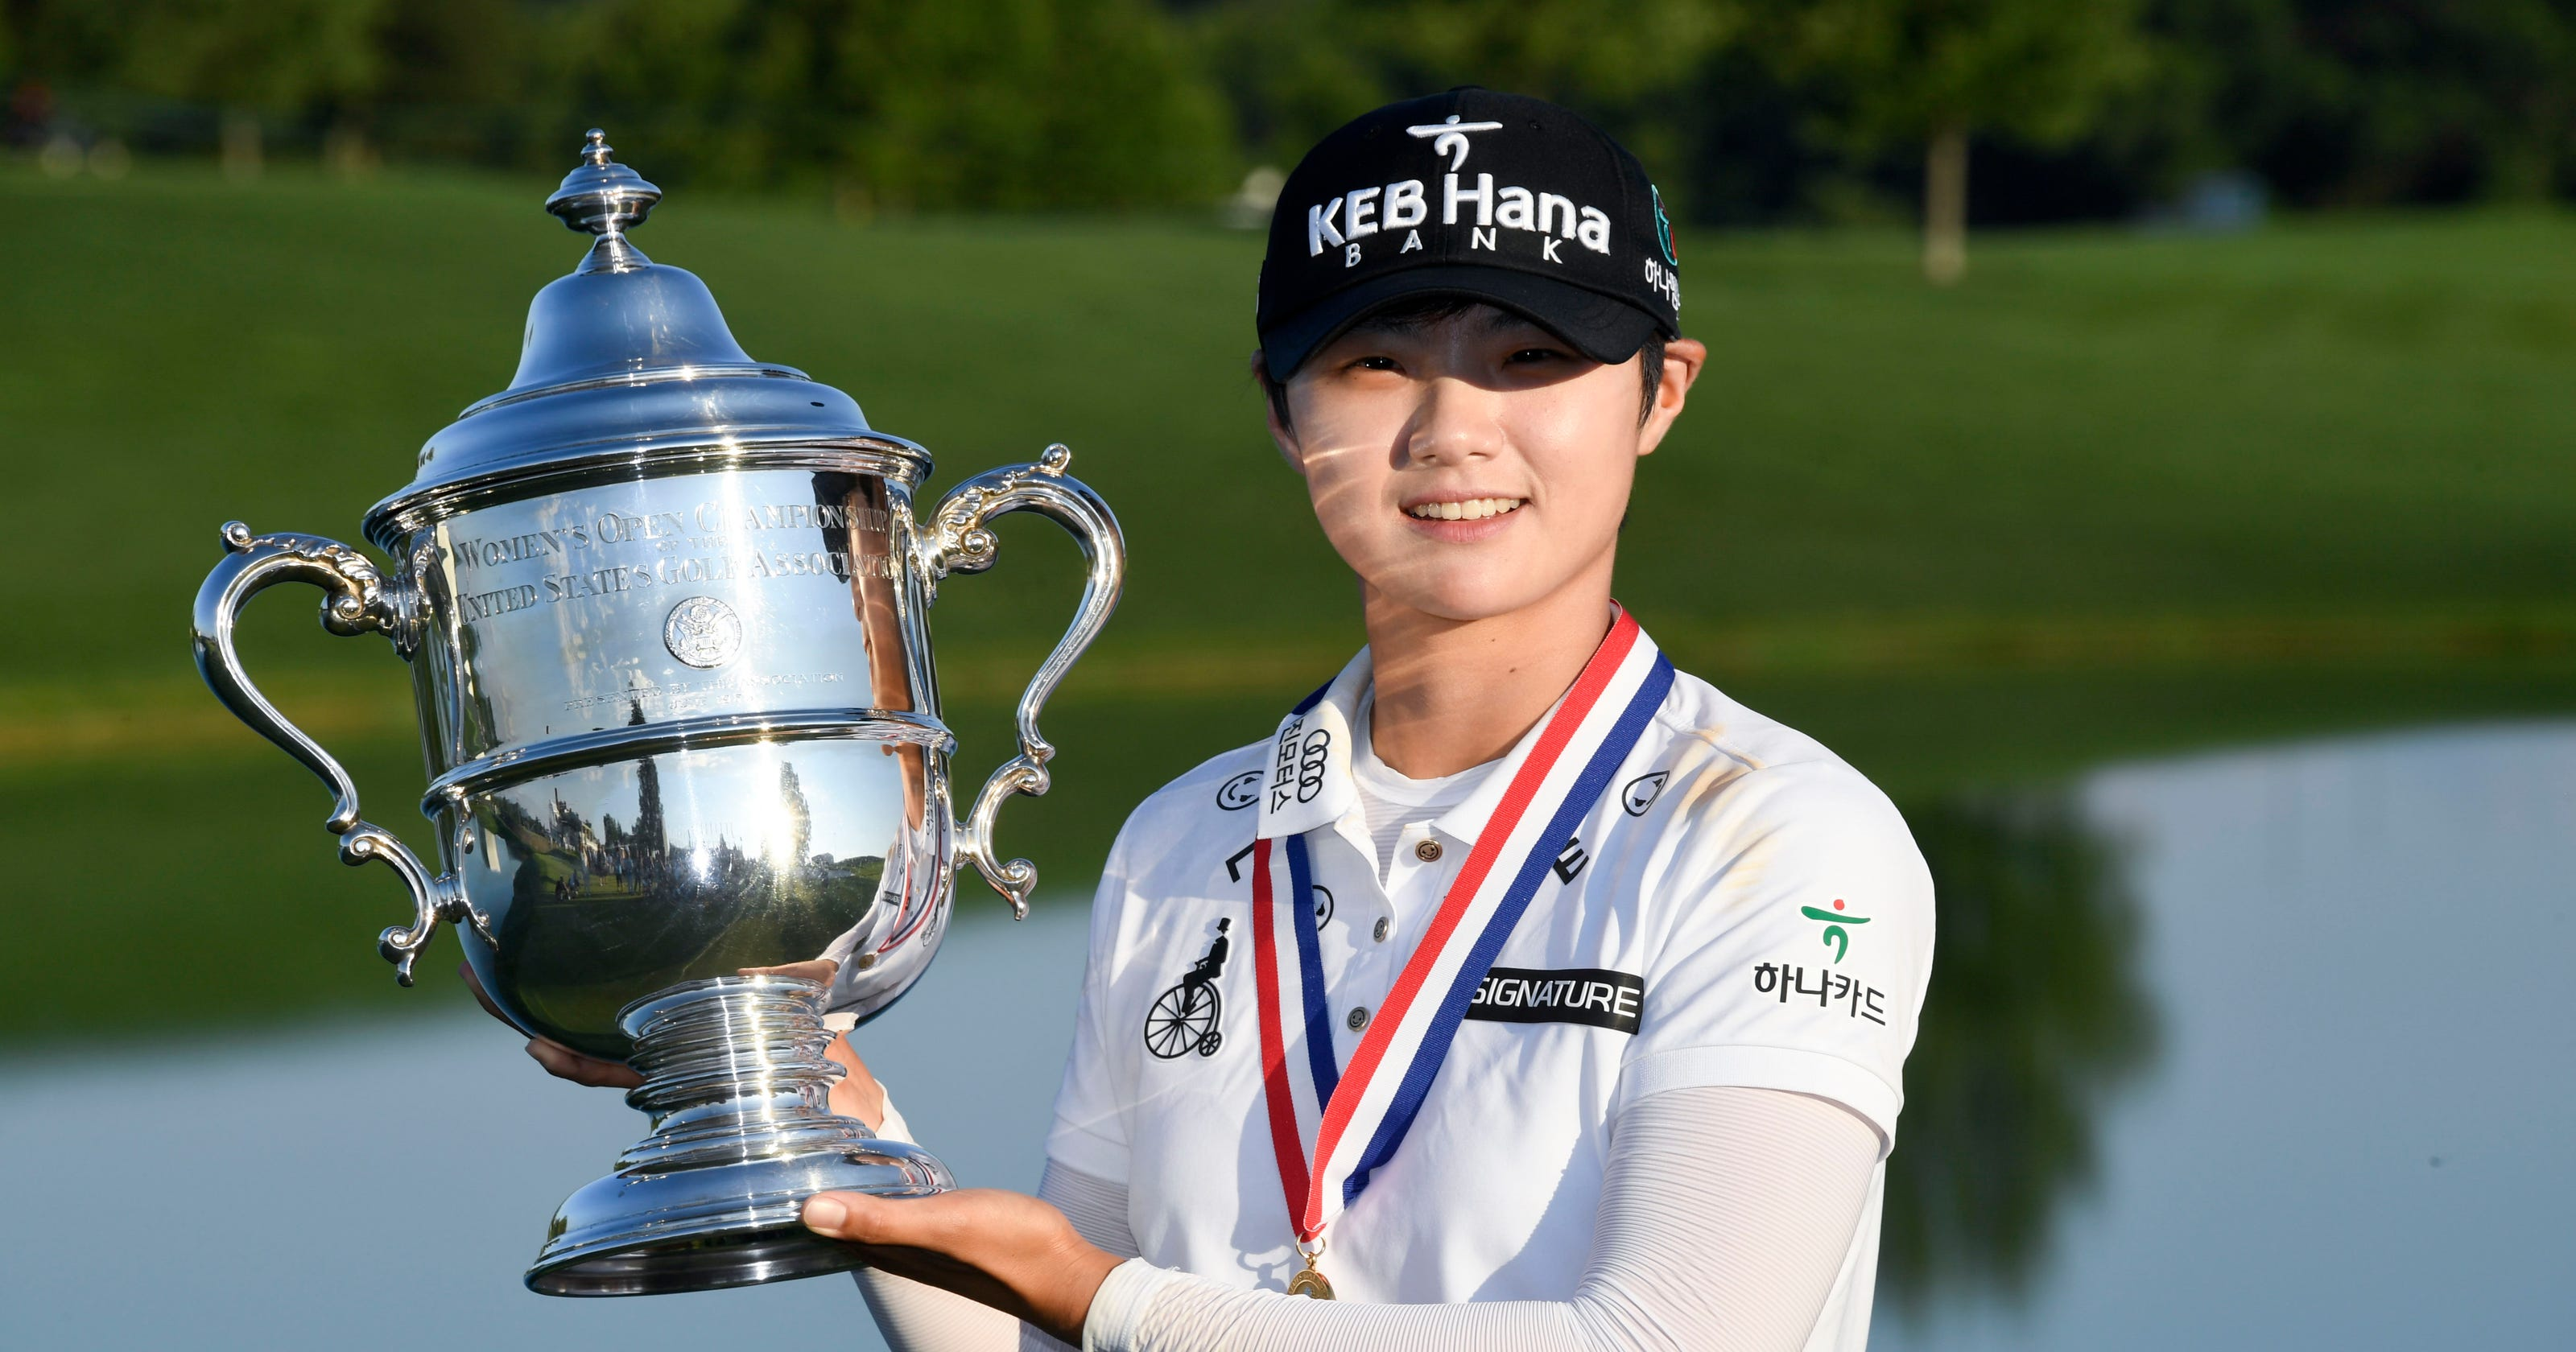 U S  Women's Open: South Koreans continue their dominance